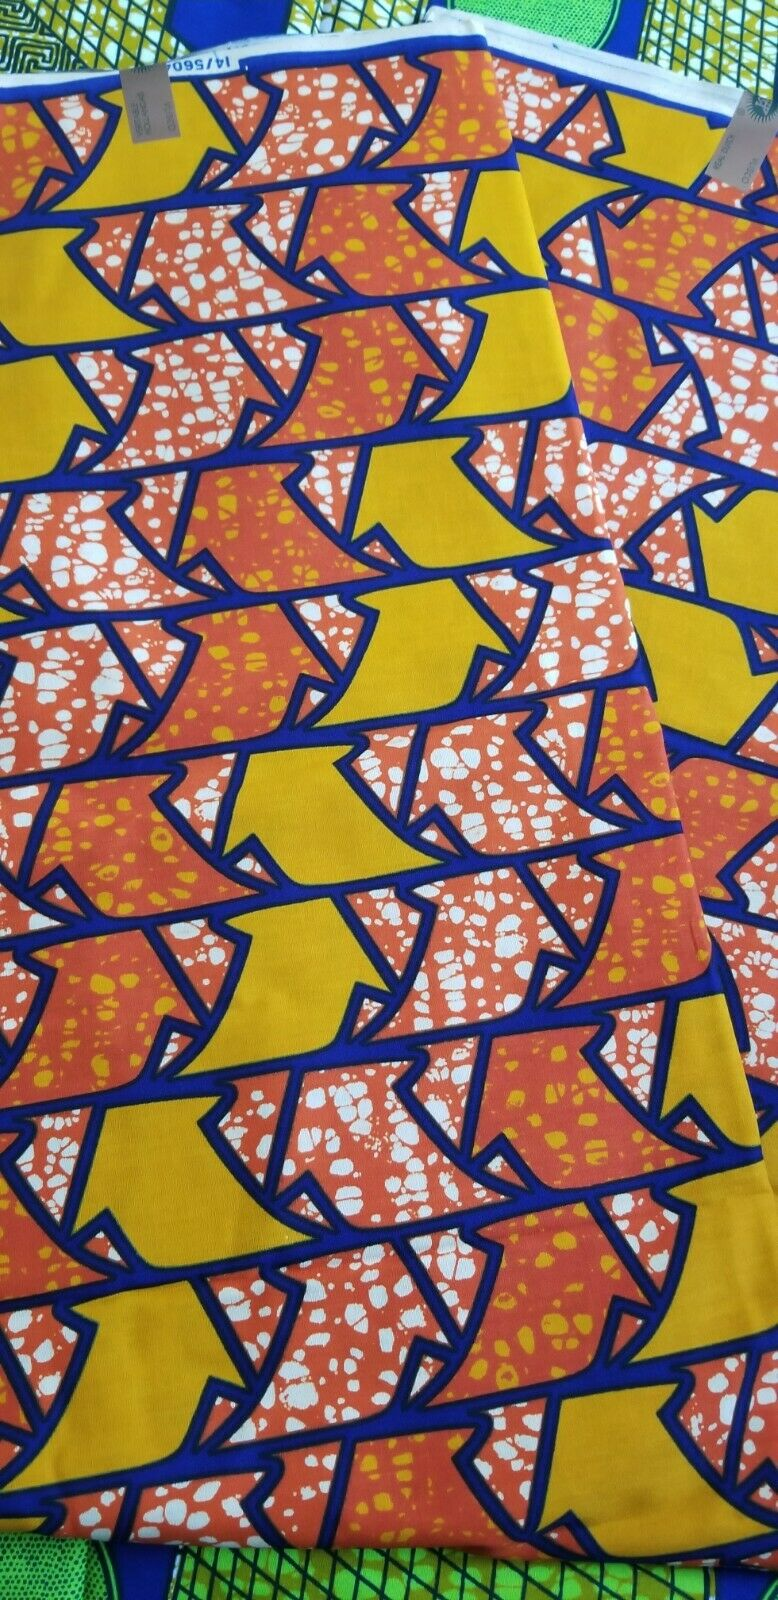 Jungle Fever Multi African fabric 100% Cotton 2 yards $10